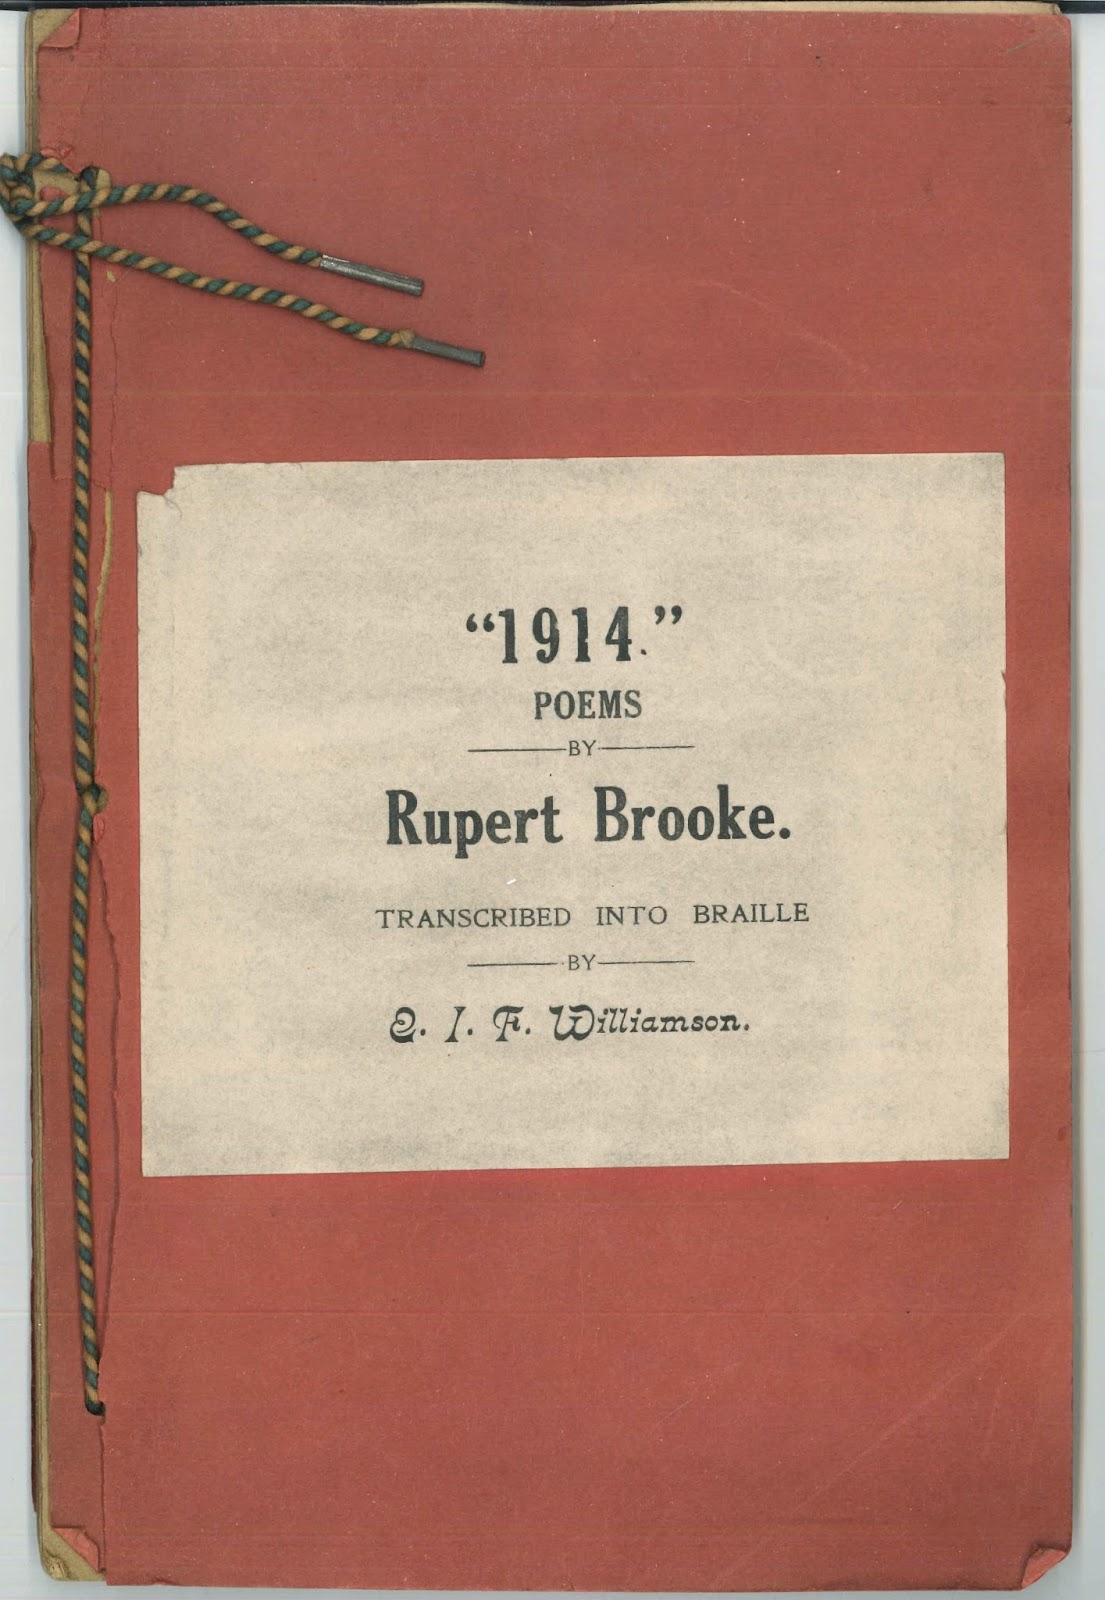 The paper cover for Brooke's poems.